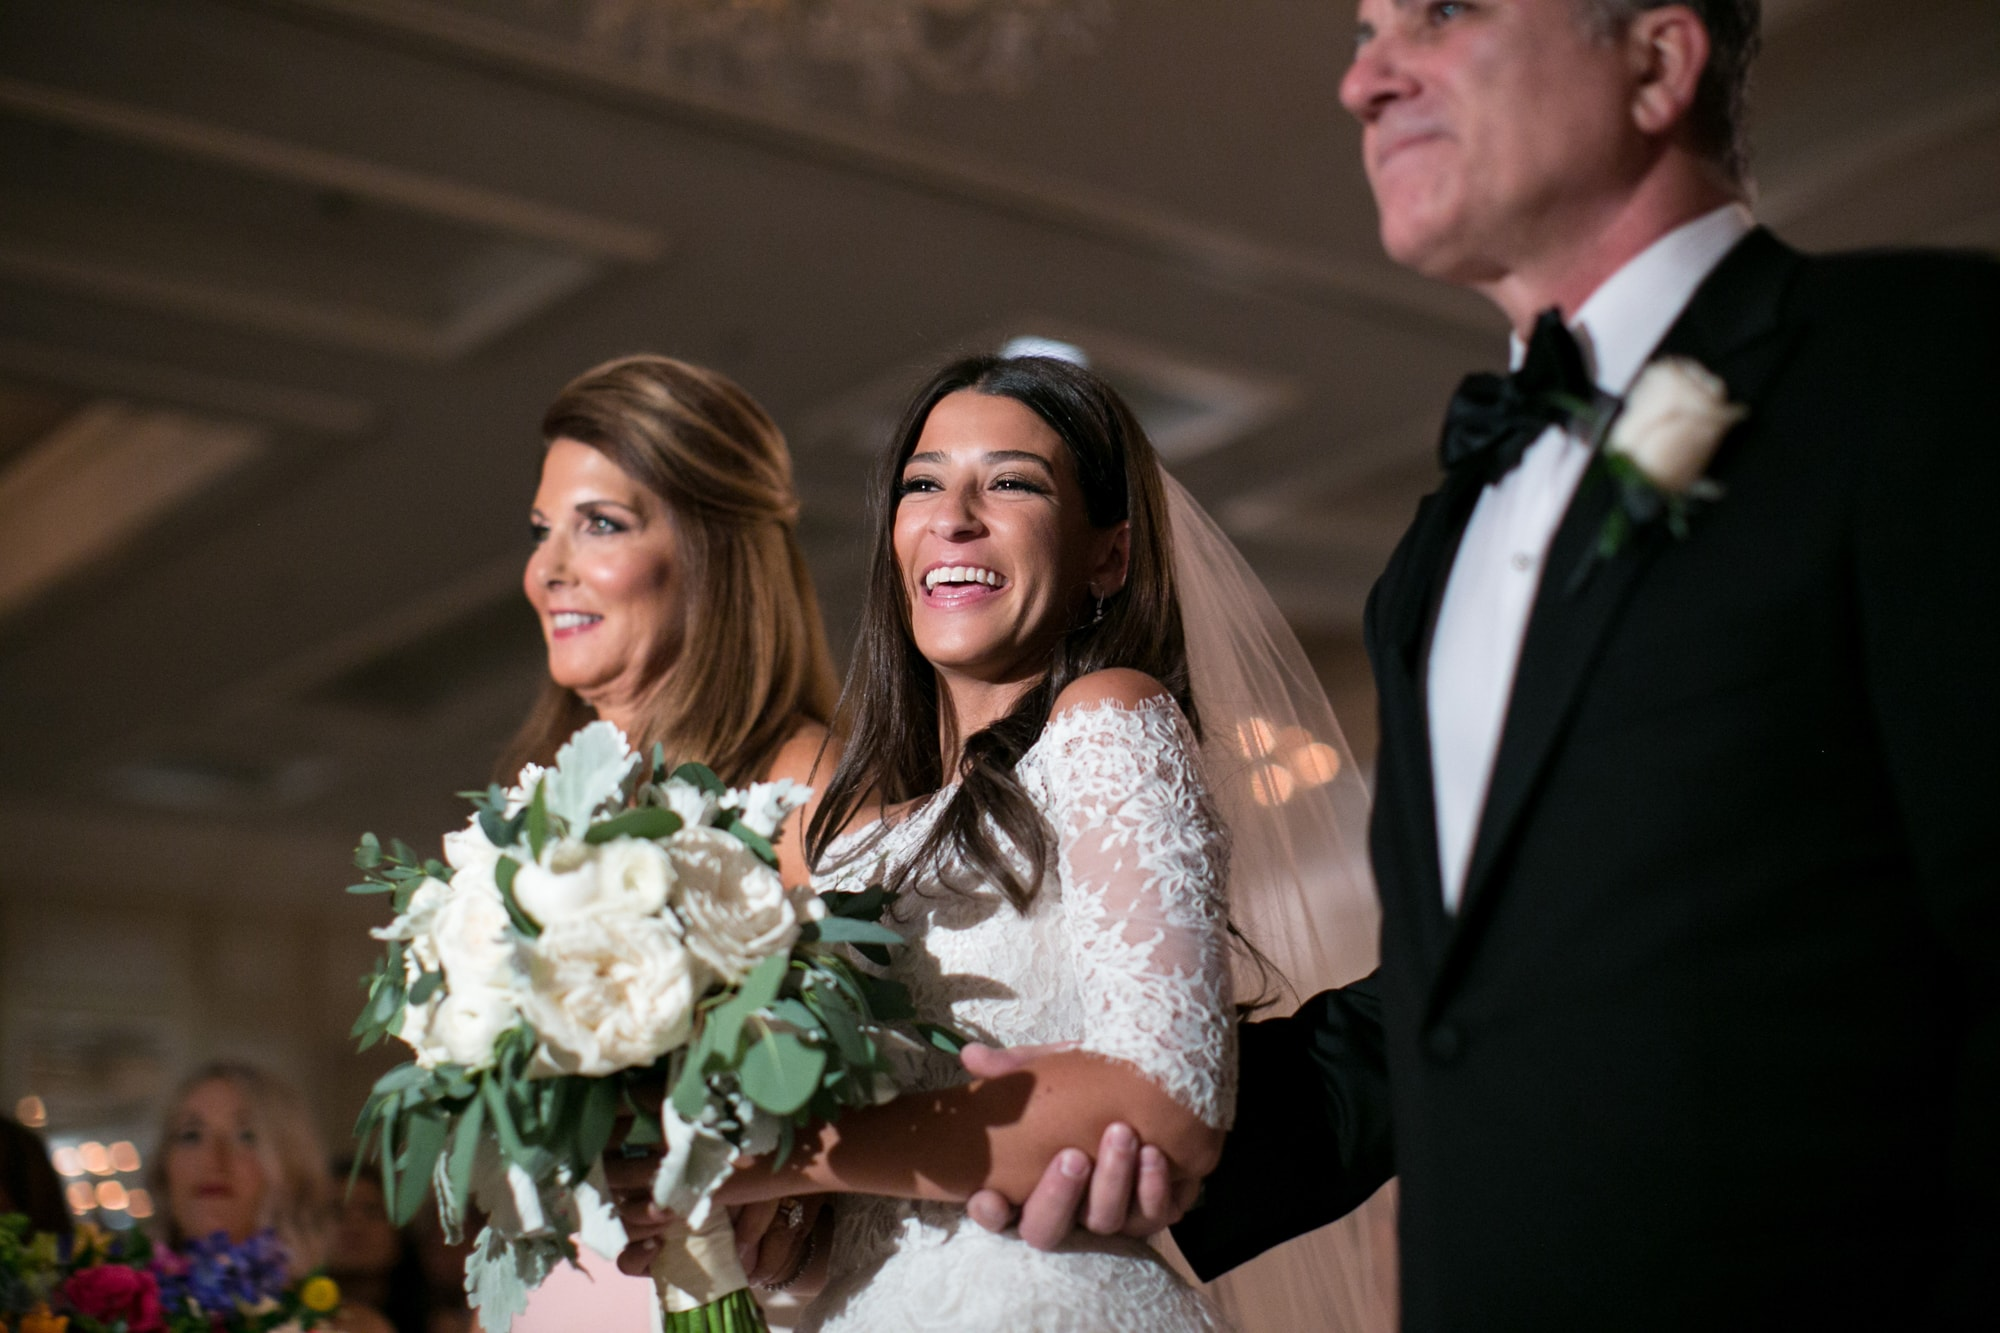 Happy Bride walking down aisle with her parents.